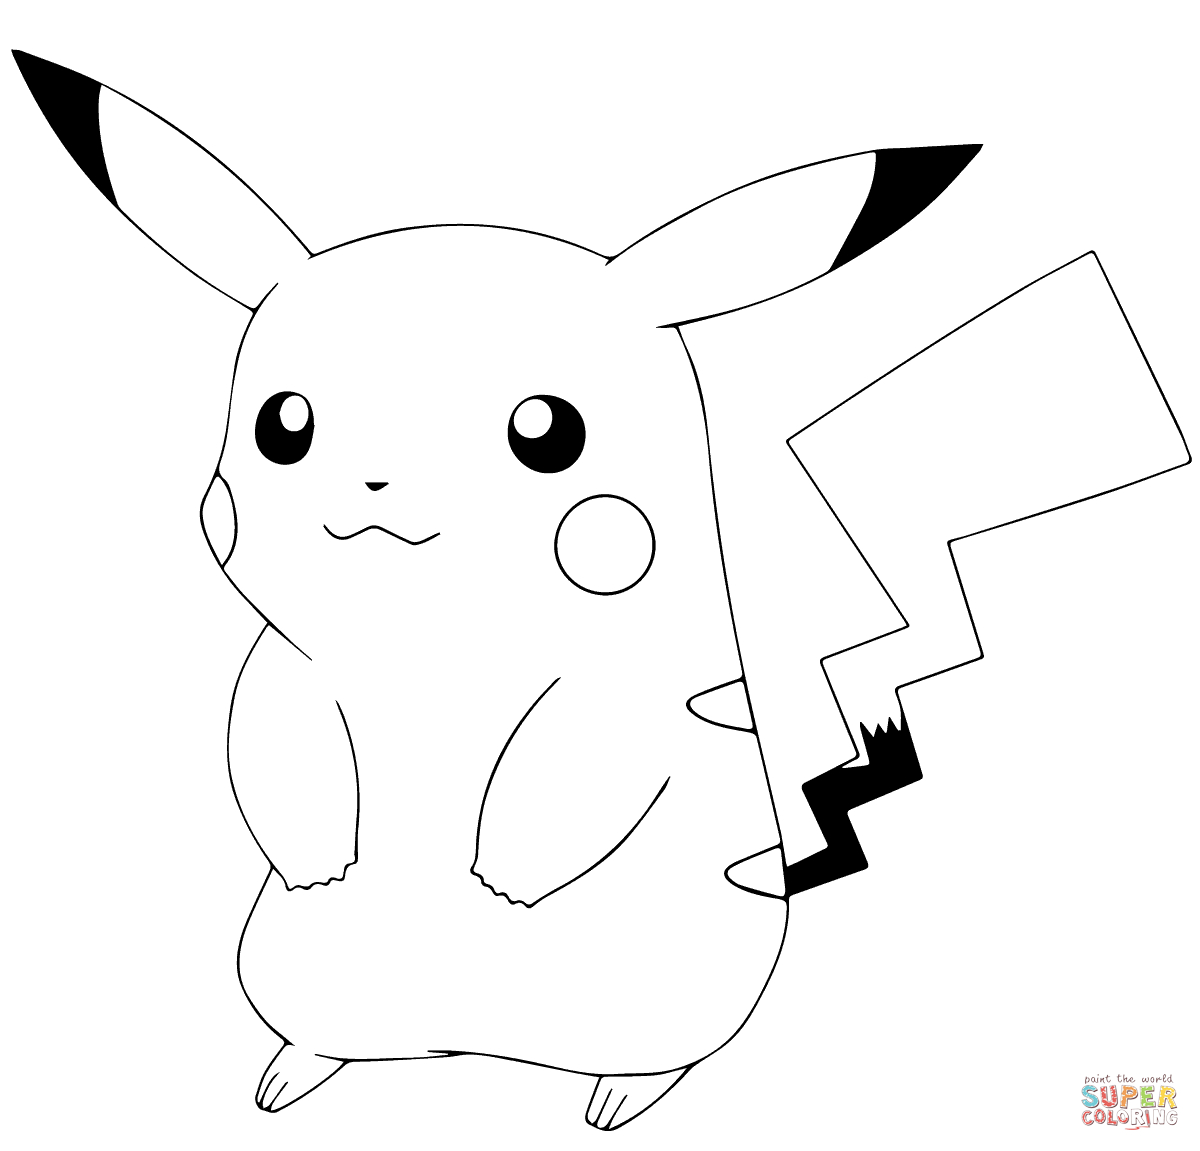 Pokémon Go Pikachu Coloring Page | Free Printable Coloring Pages - Free Printable Pokemon Coloring Pages